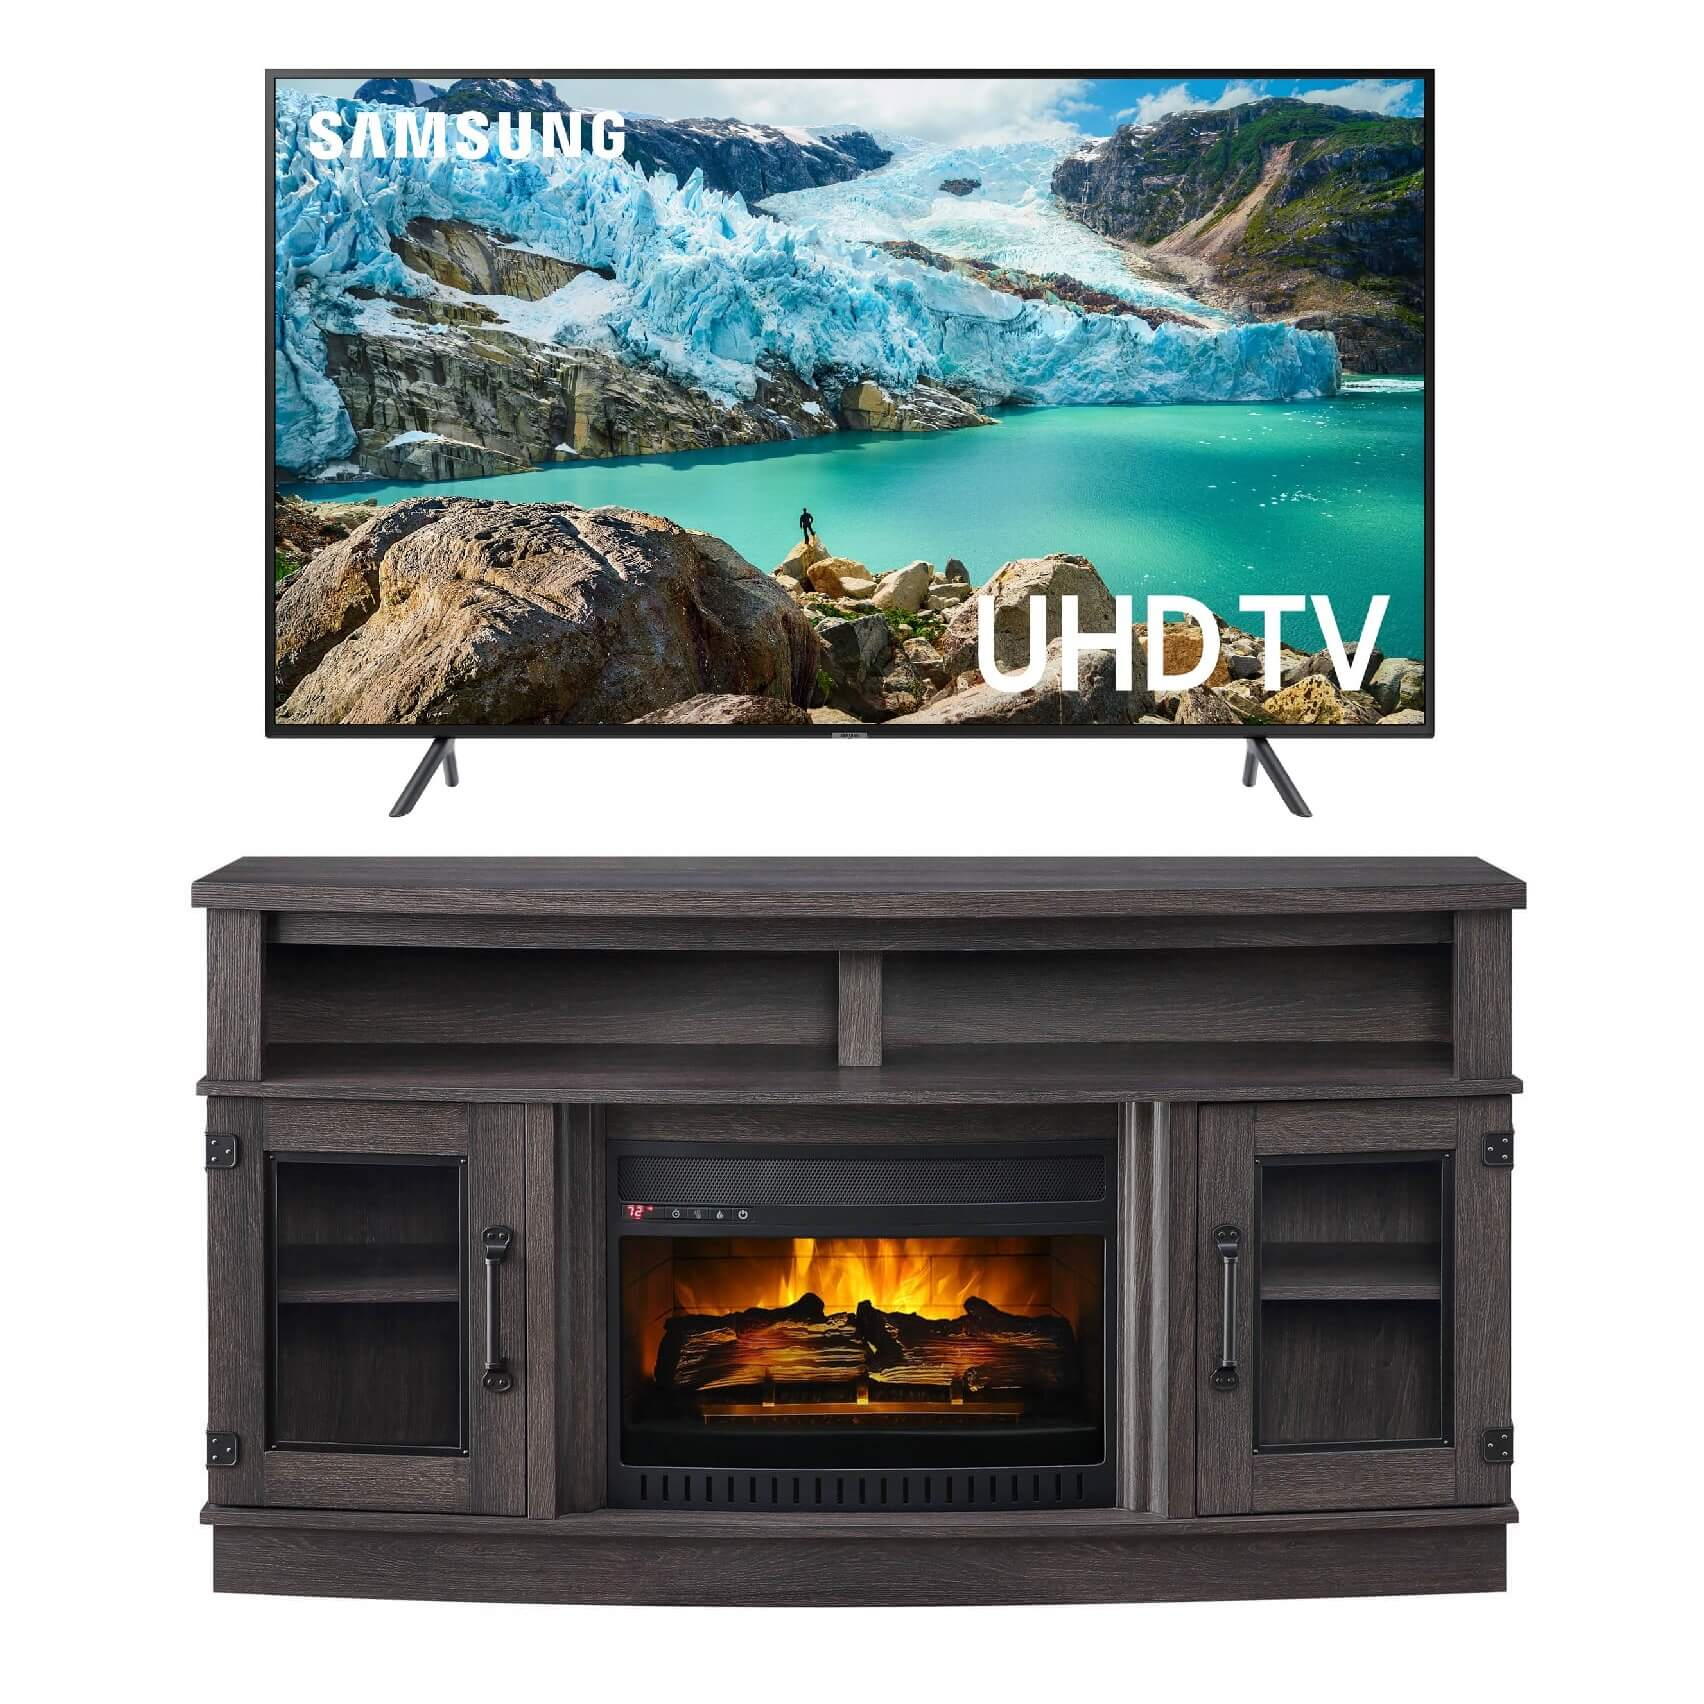 Rent To Own Samsung Electronics 65 Class Smart 4k Uhd Tv With 60 Fireplace Tv Console At Aaron S Today